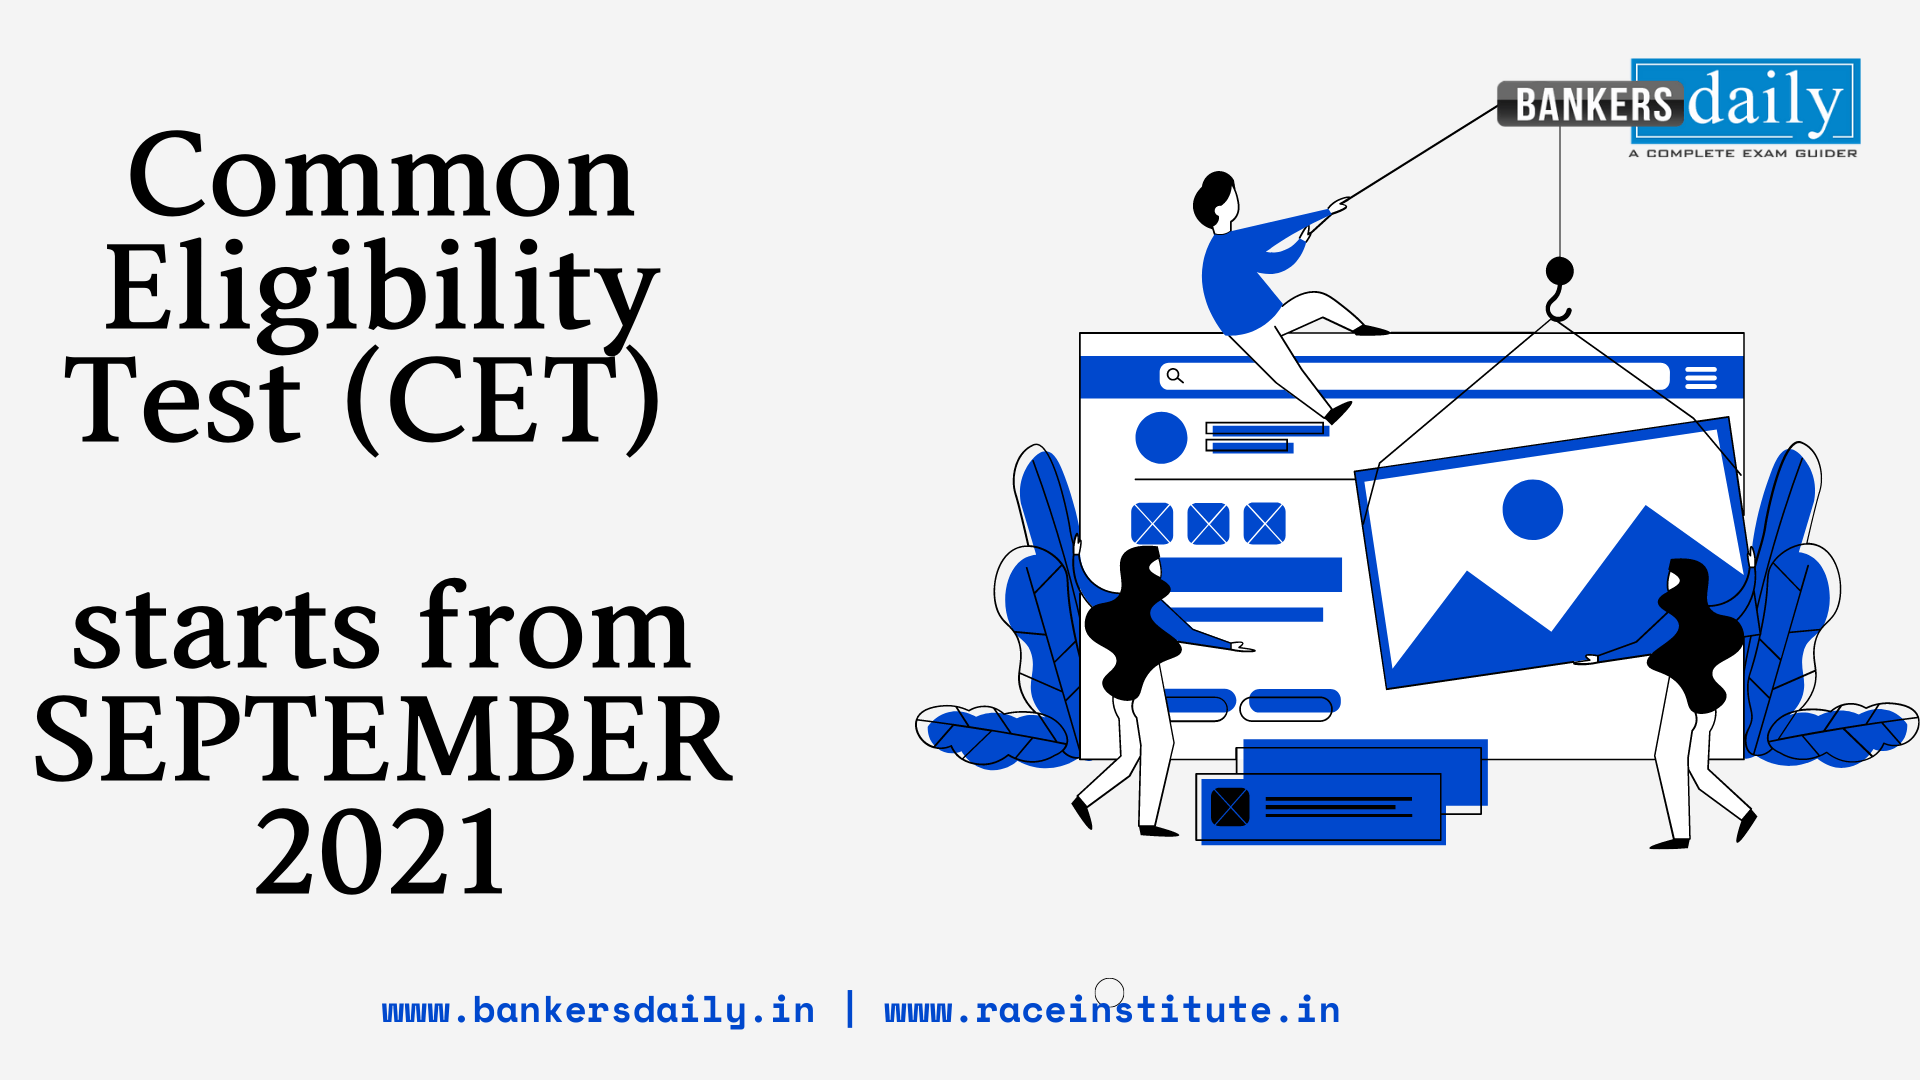 Common Eligibility Test (CET) starts from SEPTEMBER 2021